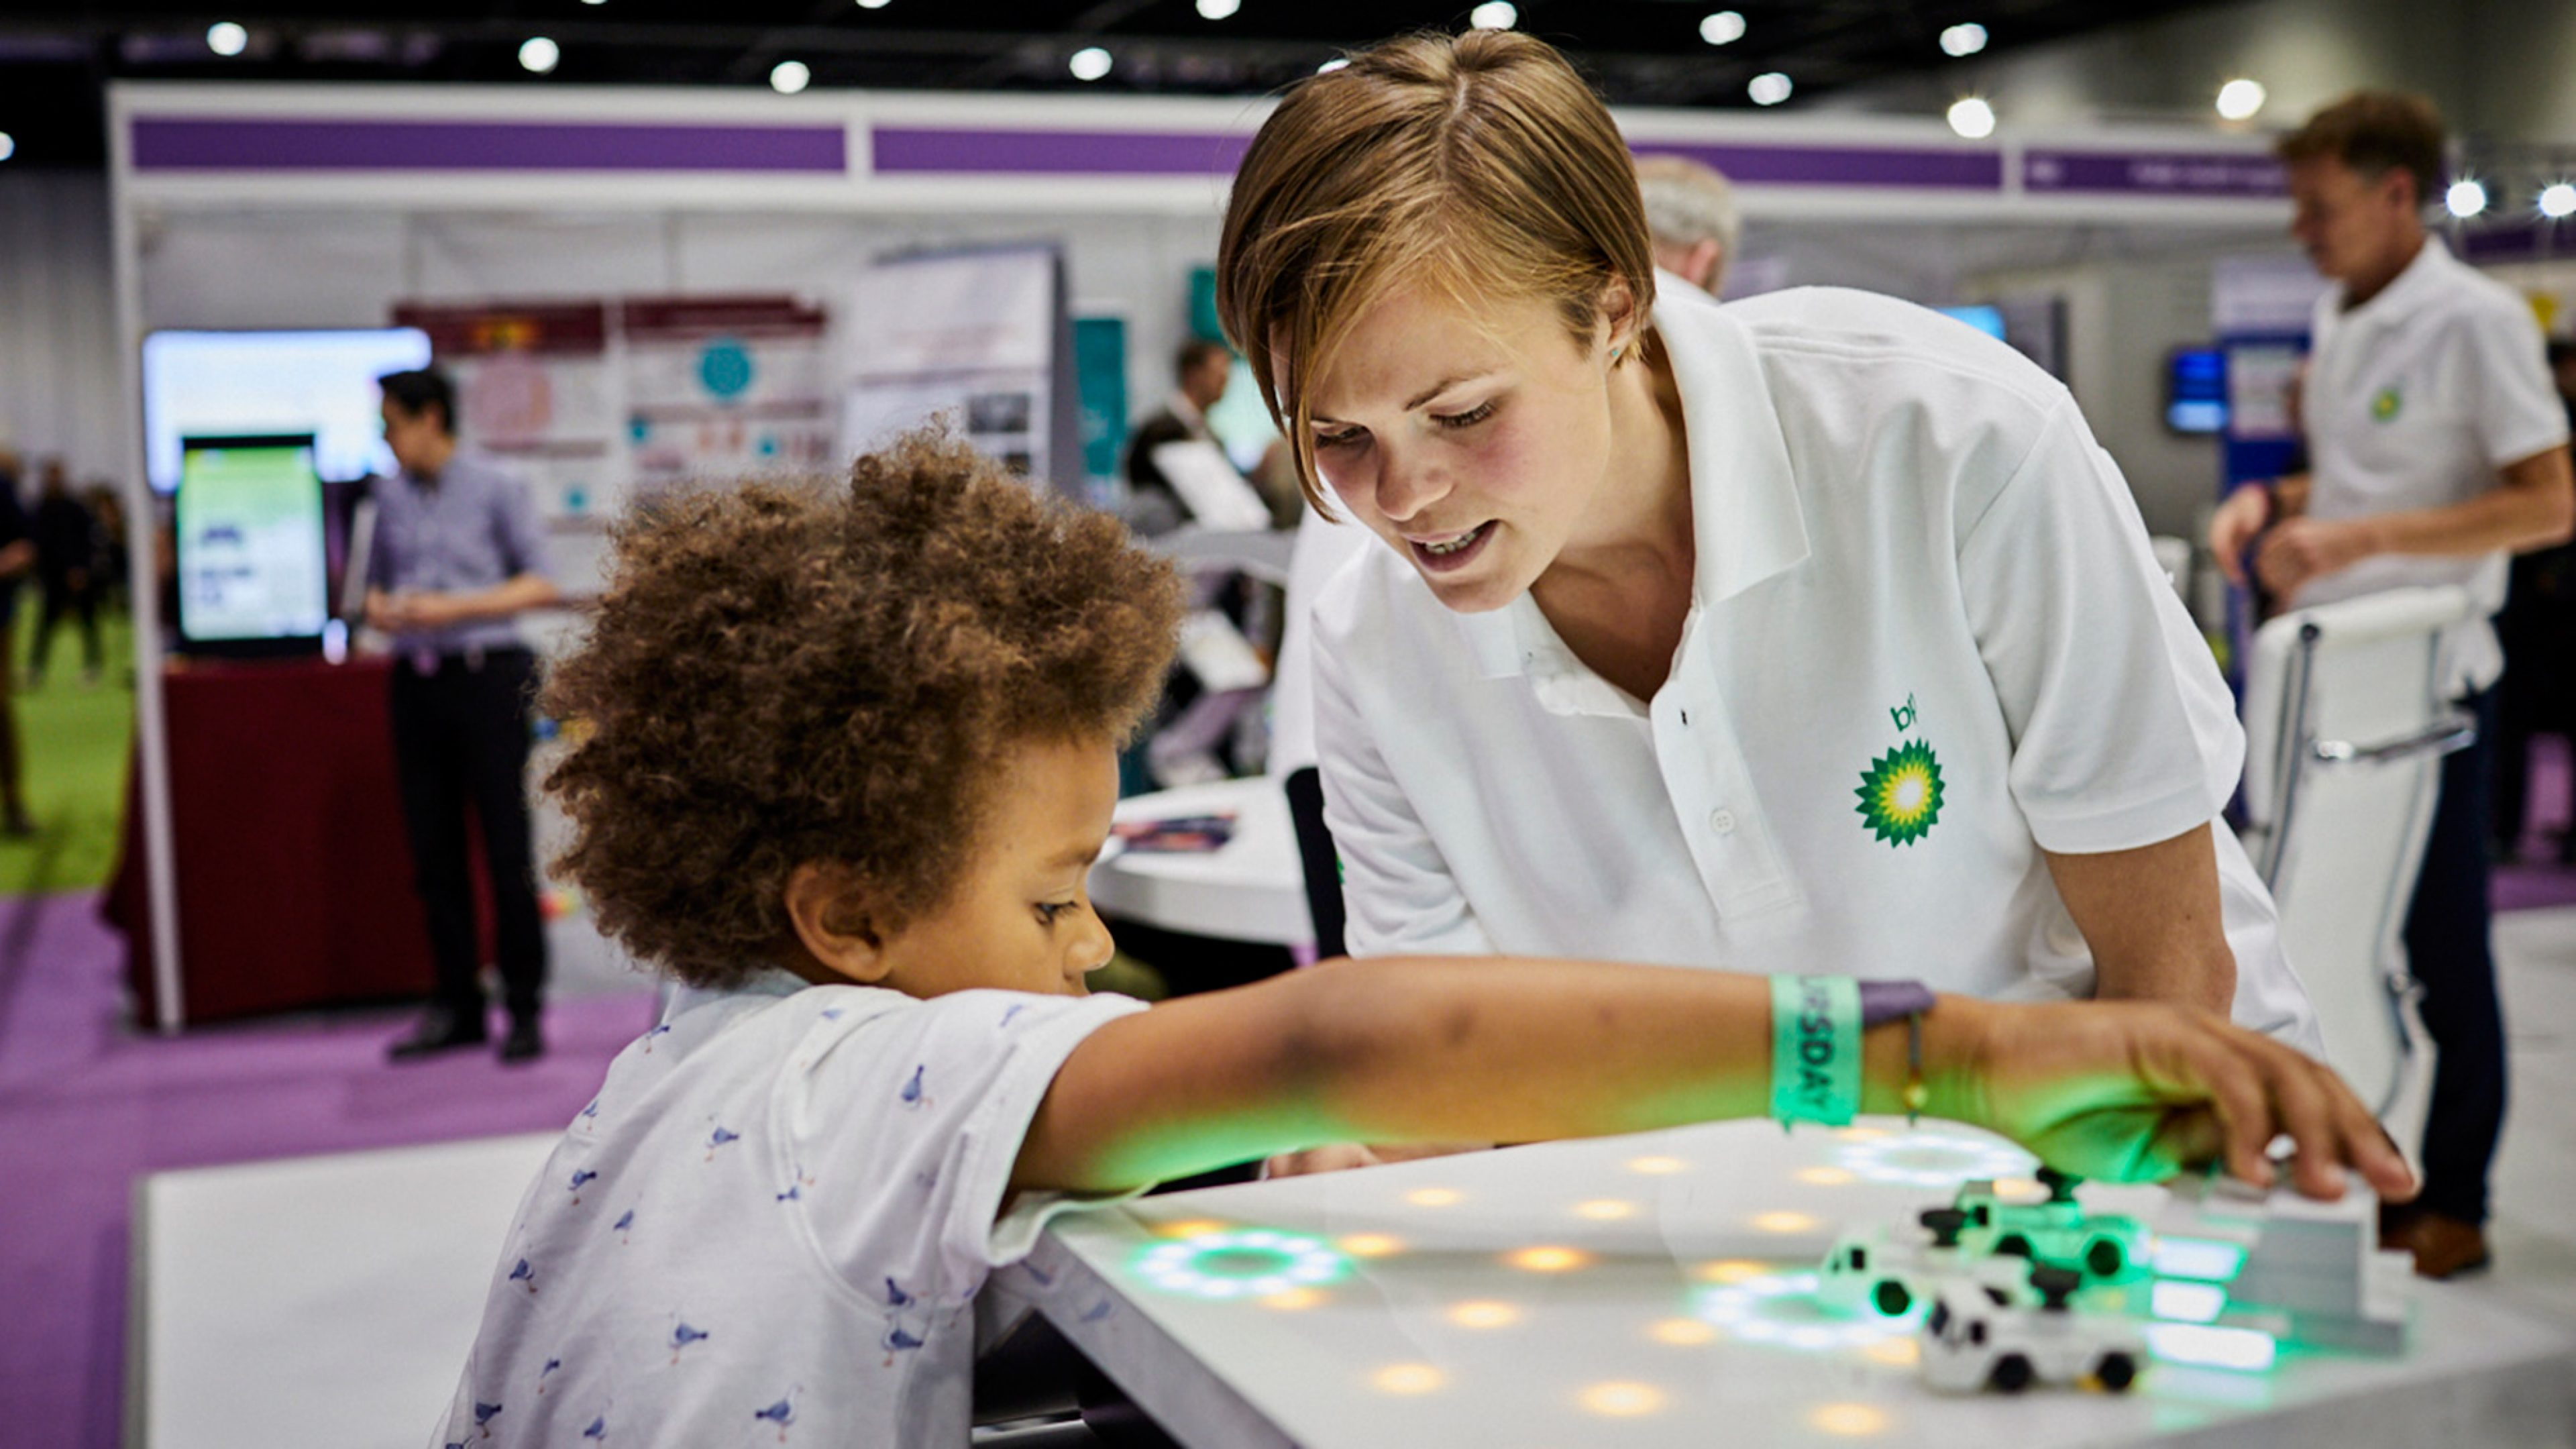 Woman in BP t-shirt showing child an engineering game